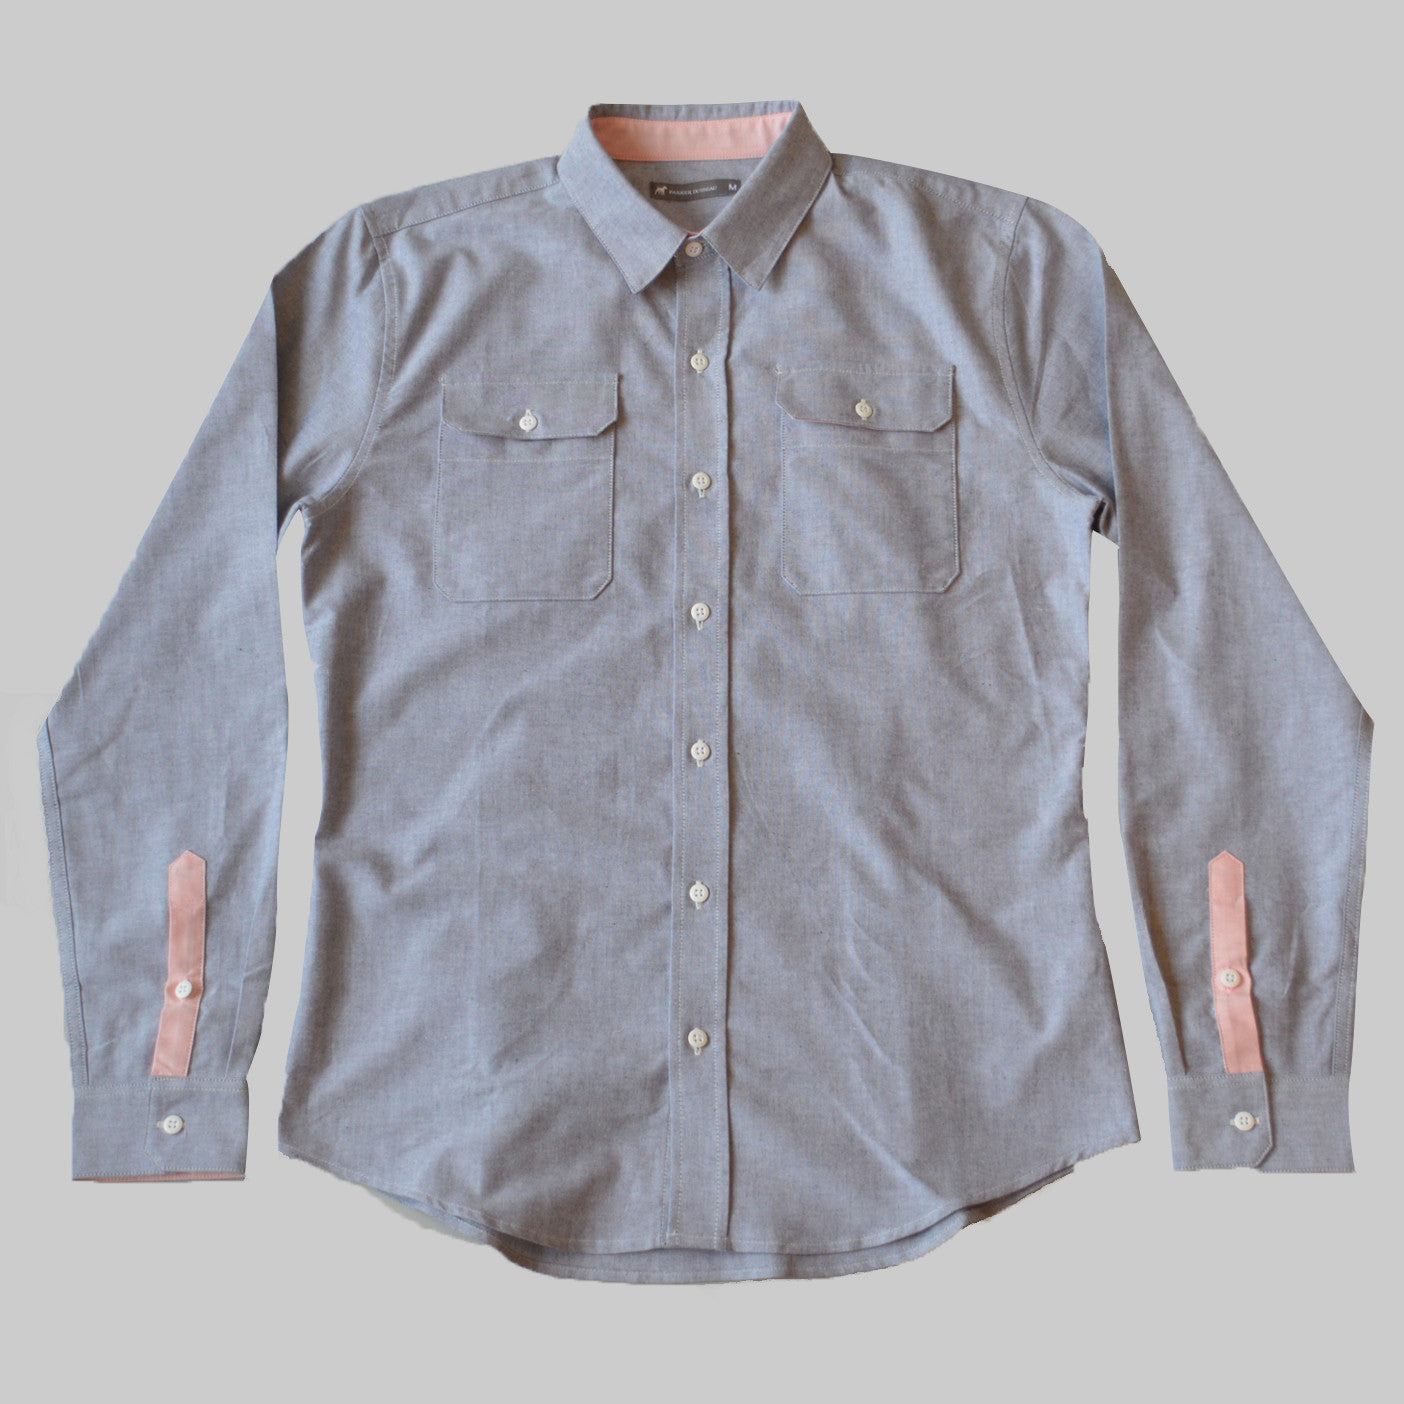 Limited Edition Giro d'Italia Oxford Work Shirt - Carbon Grey Work Shirt, Limited Edition- Parker Dusseau : Functional Menswear Essentials for the Always Ready Lifestyle. Based in San Francisco, California